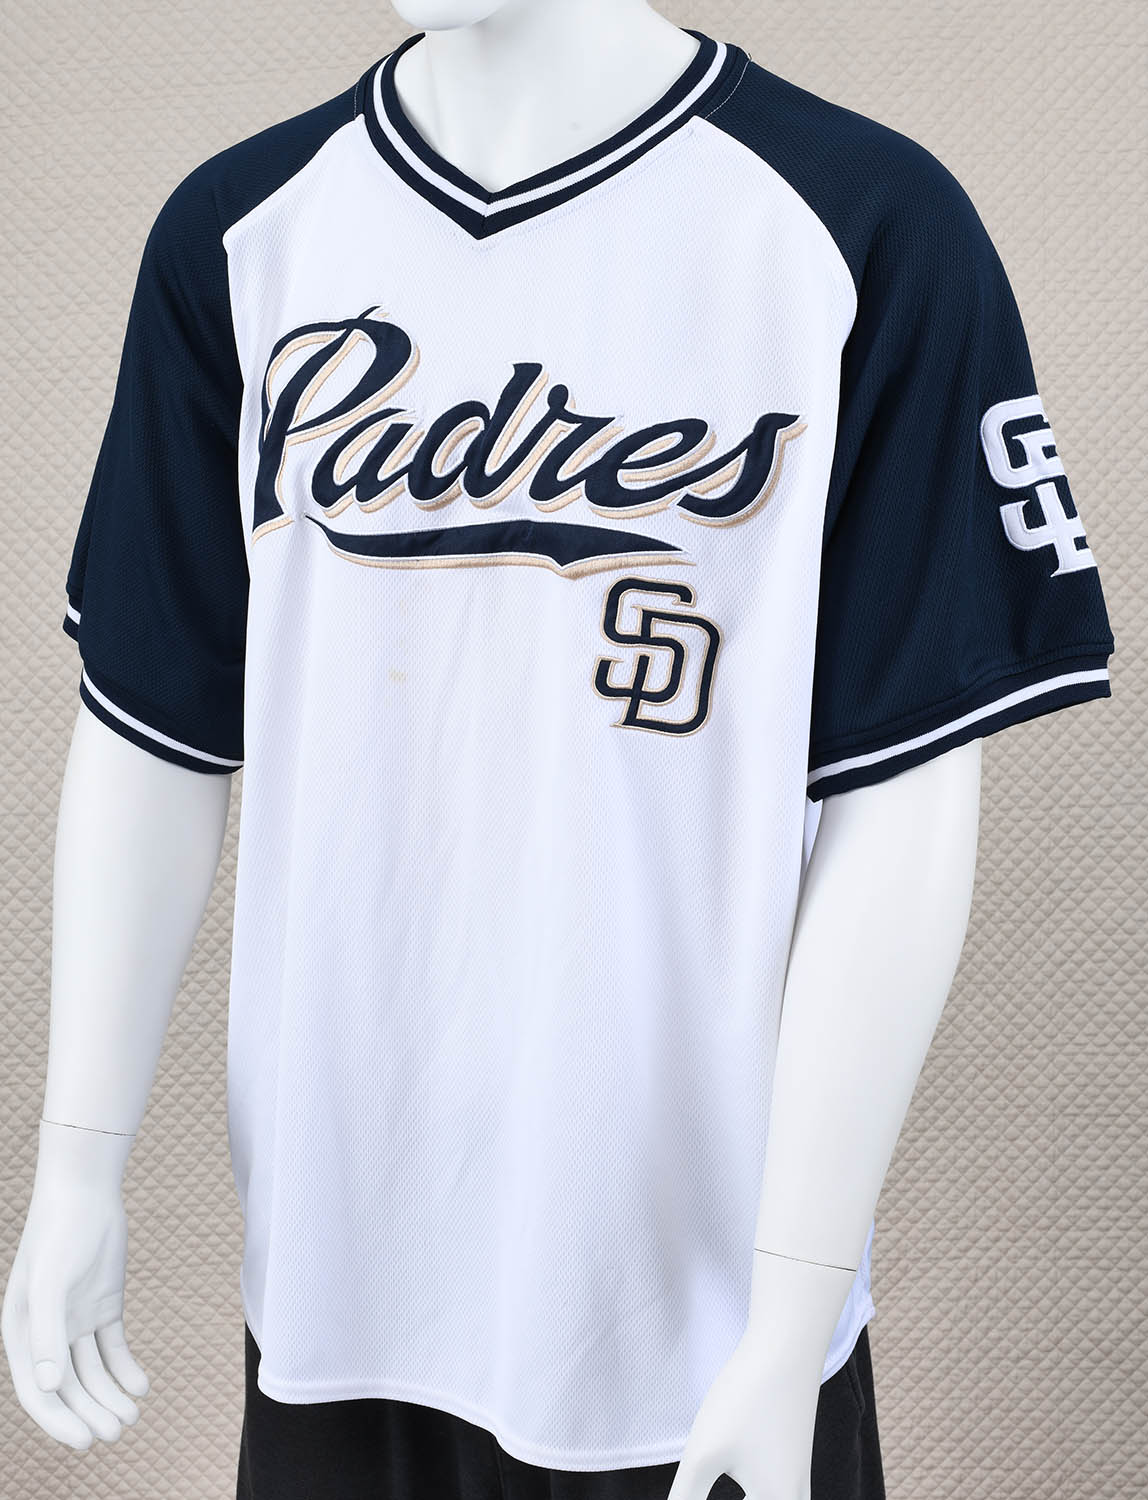 buy popular 77448 d1090 San Diego Padres White Jersey